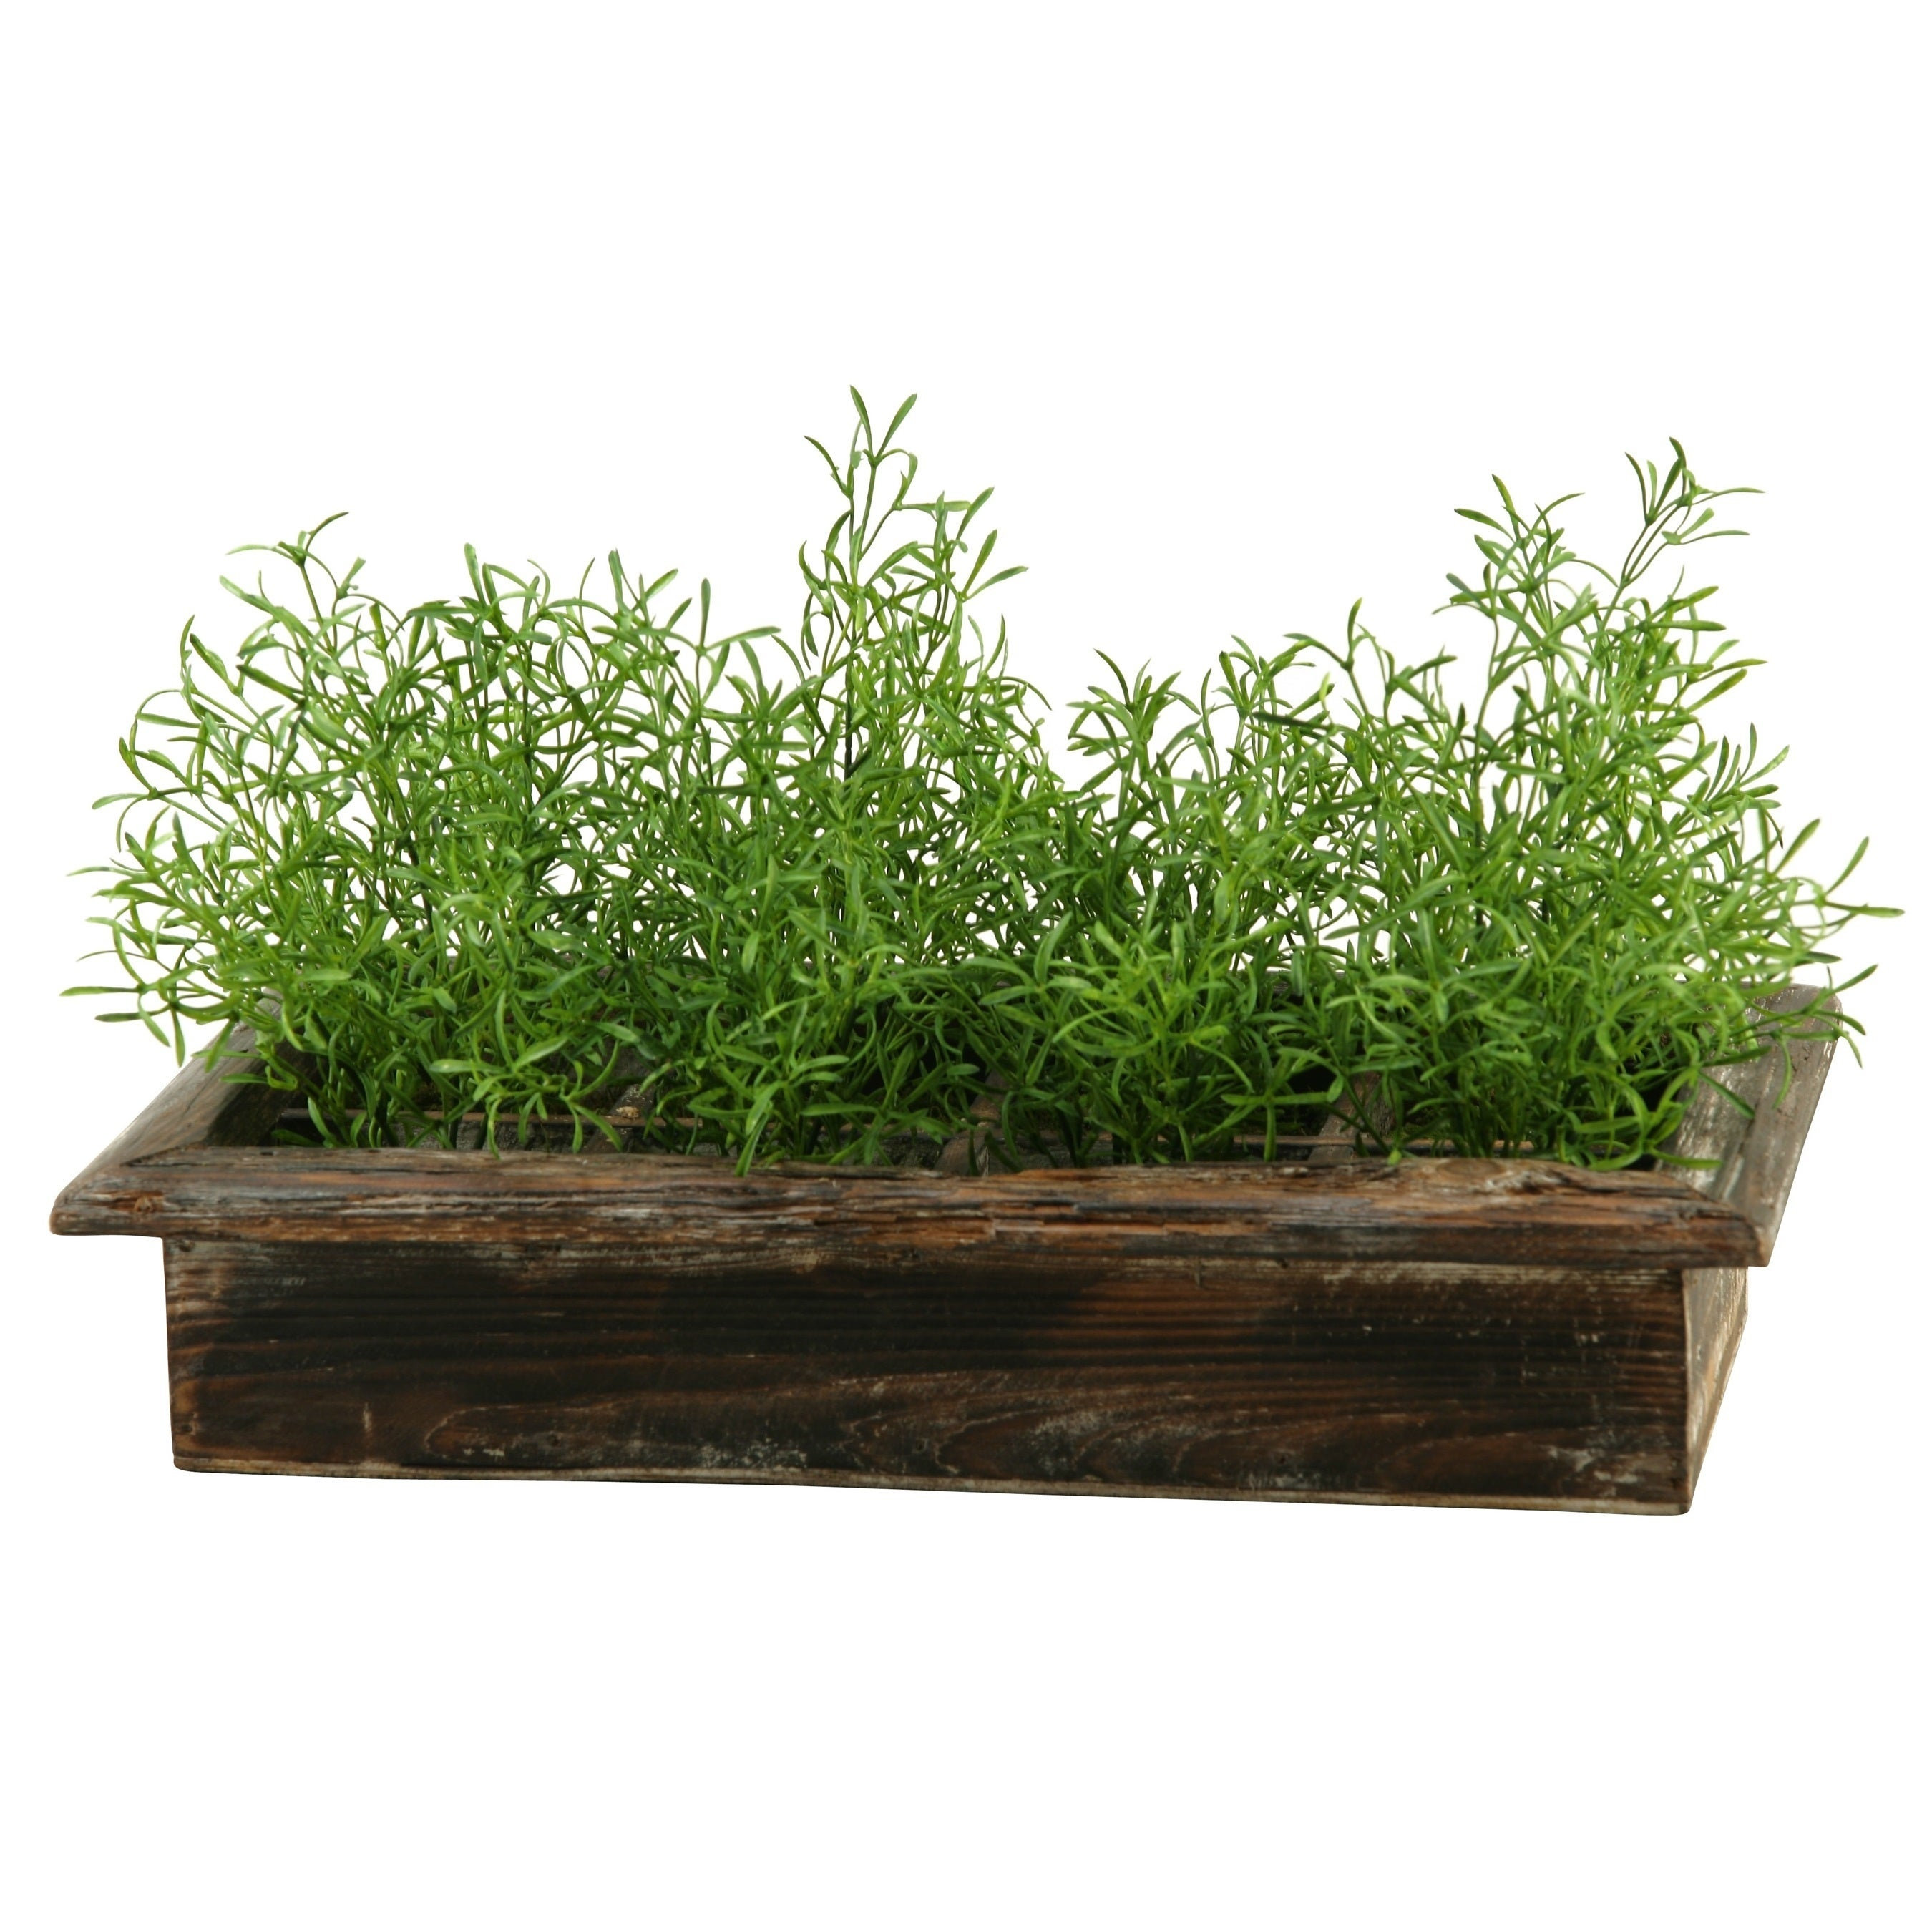 D&W Silks Wild Asparagus in Rectangle Wood Planter Box (Planter)